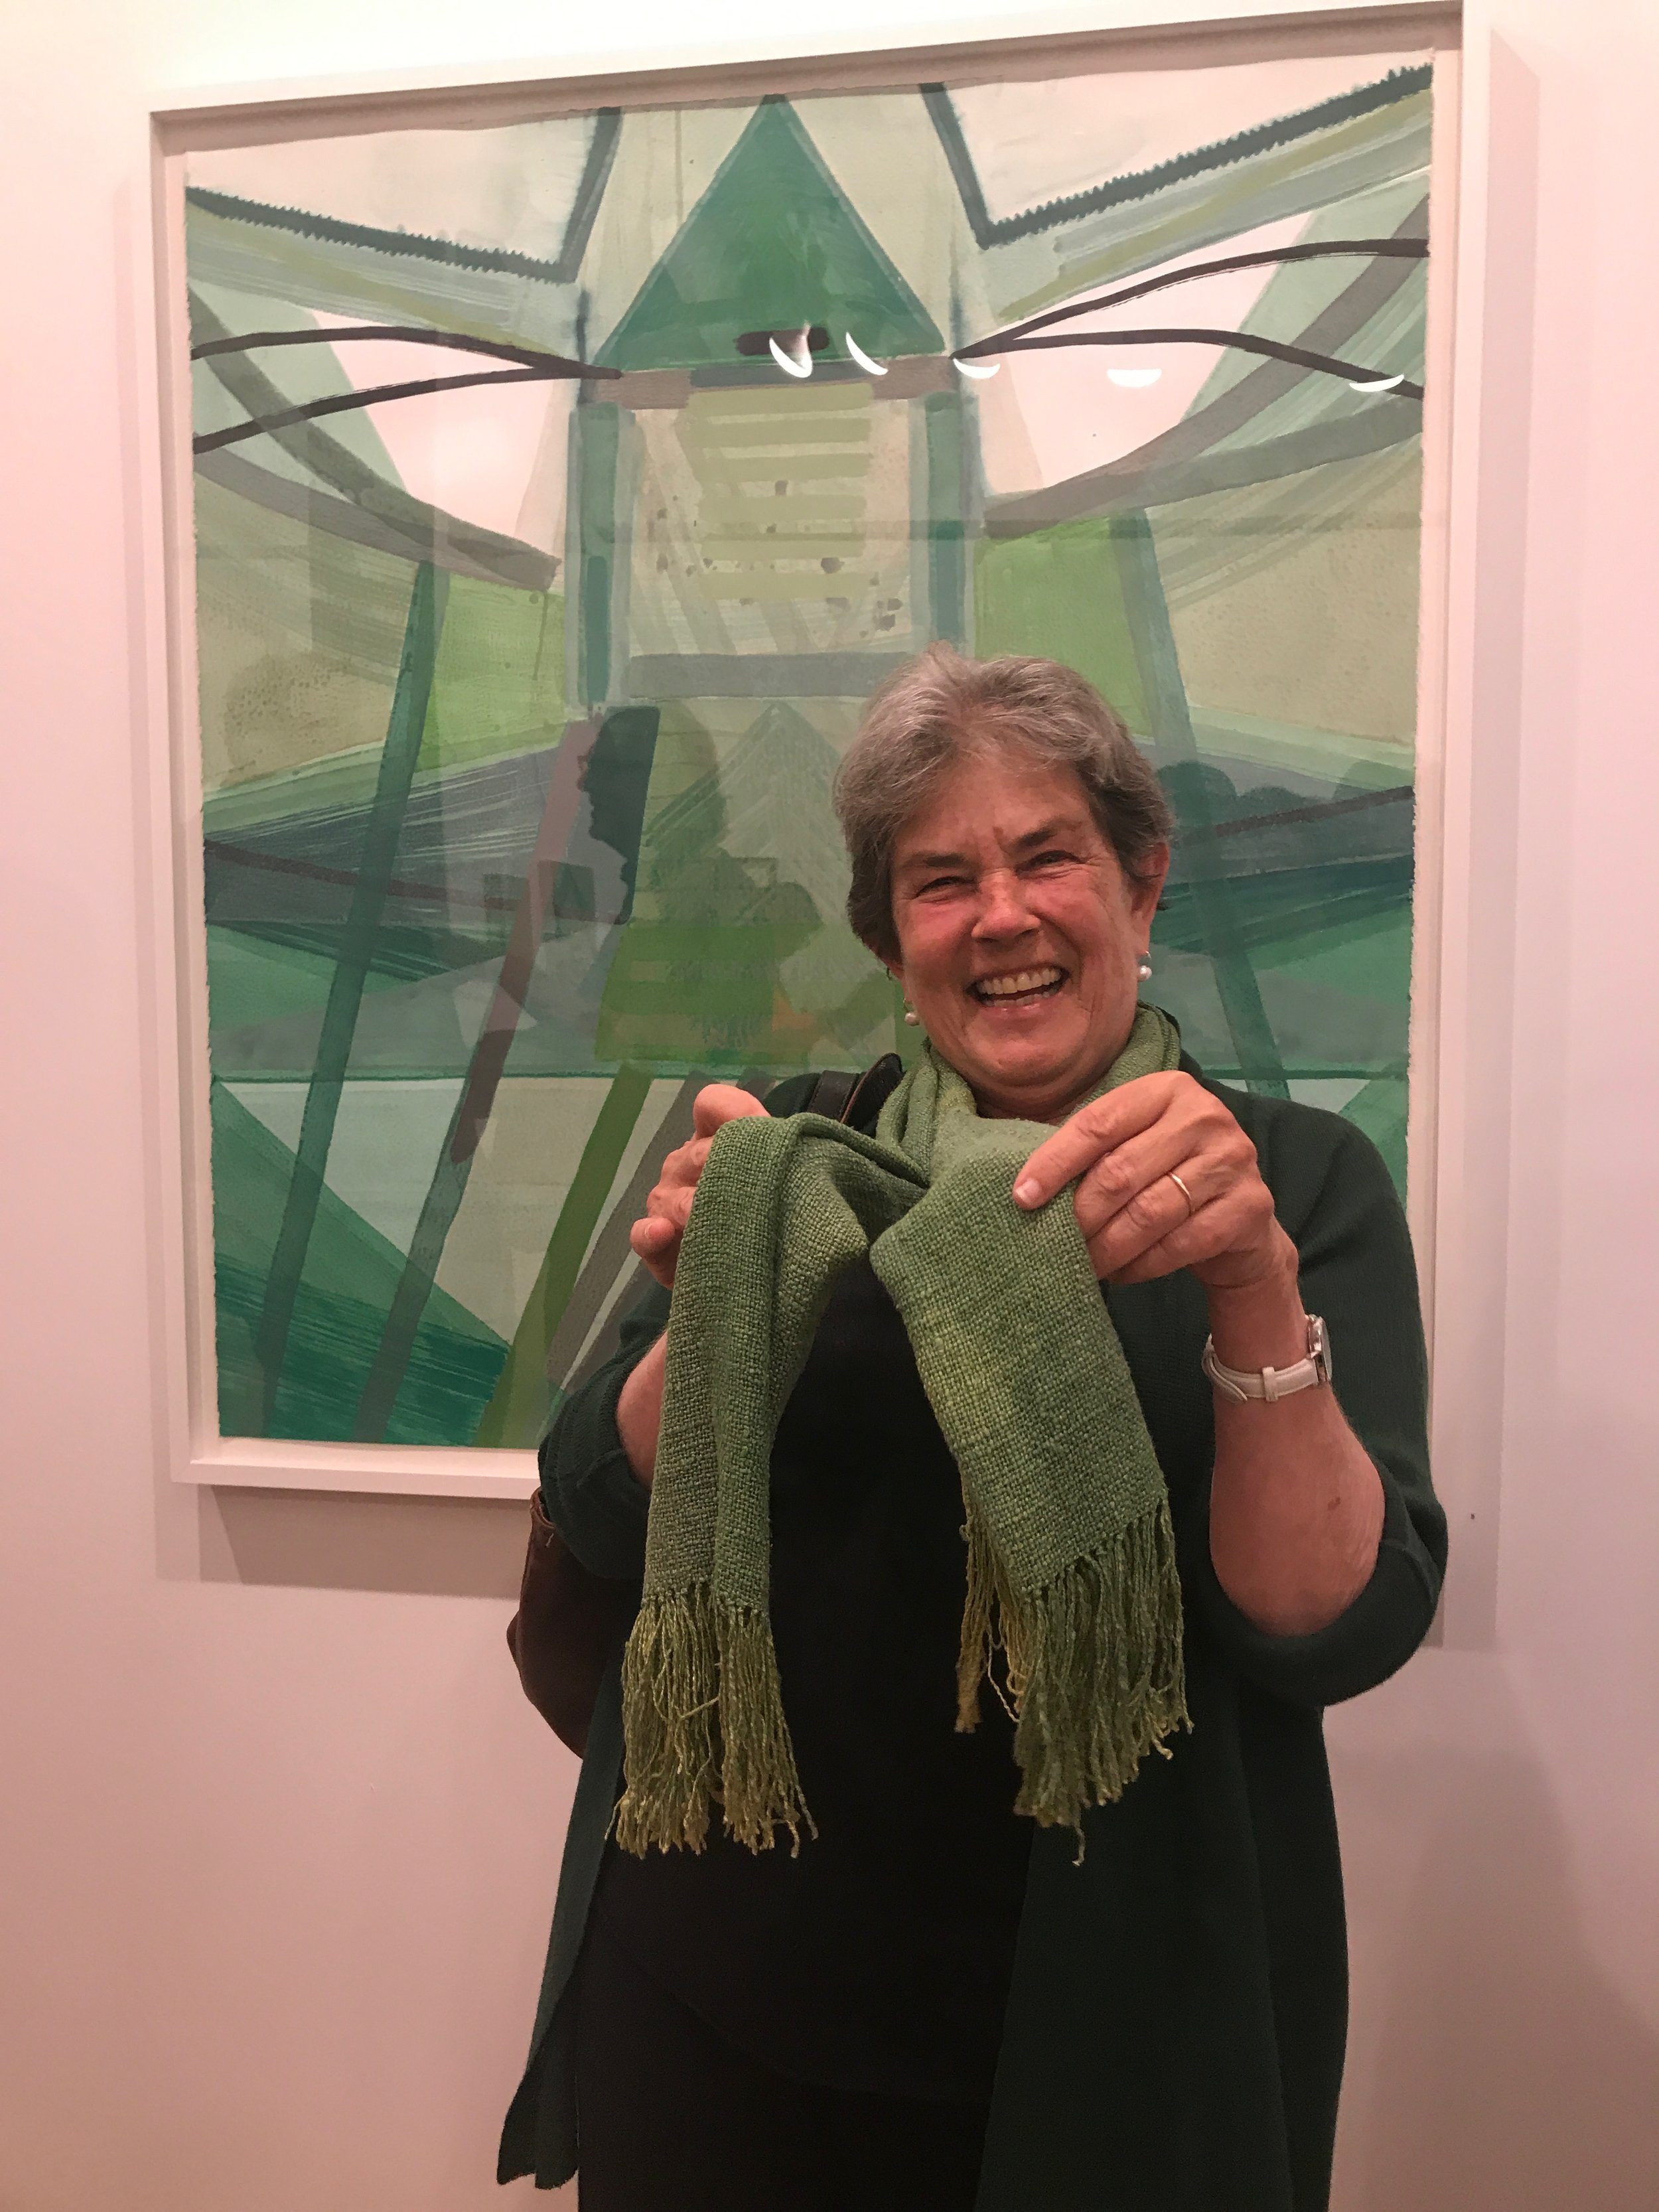 Kathy Markel in front of Ky Anderson's piece